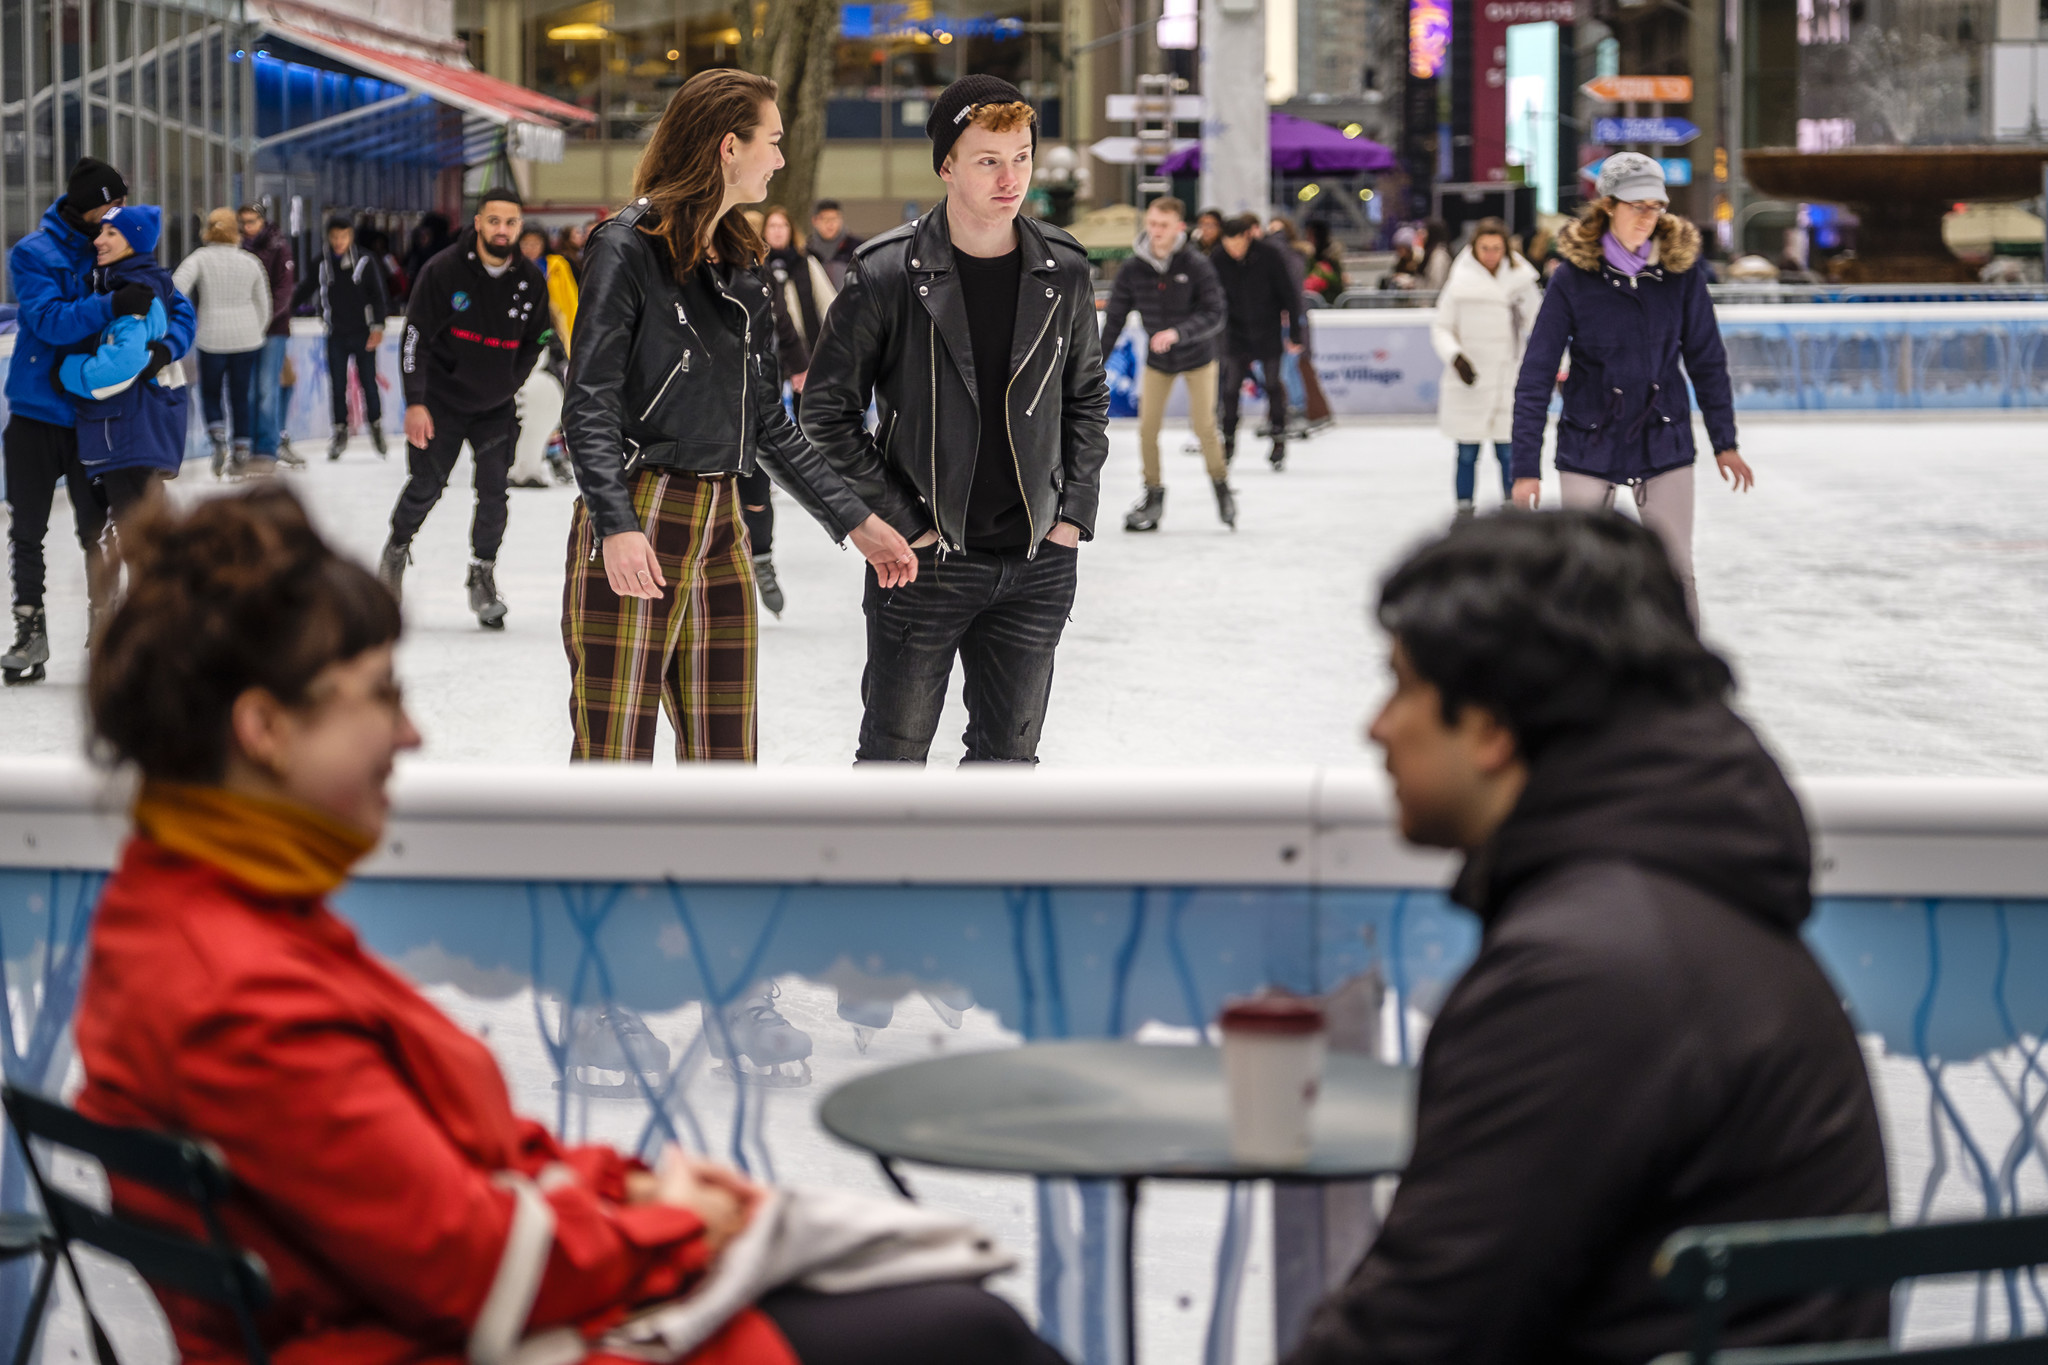 NYC councilman gives the cold shoulder to ice skating rink at Bryant Park pricing, demands investigation into 'deceptive advertising'